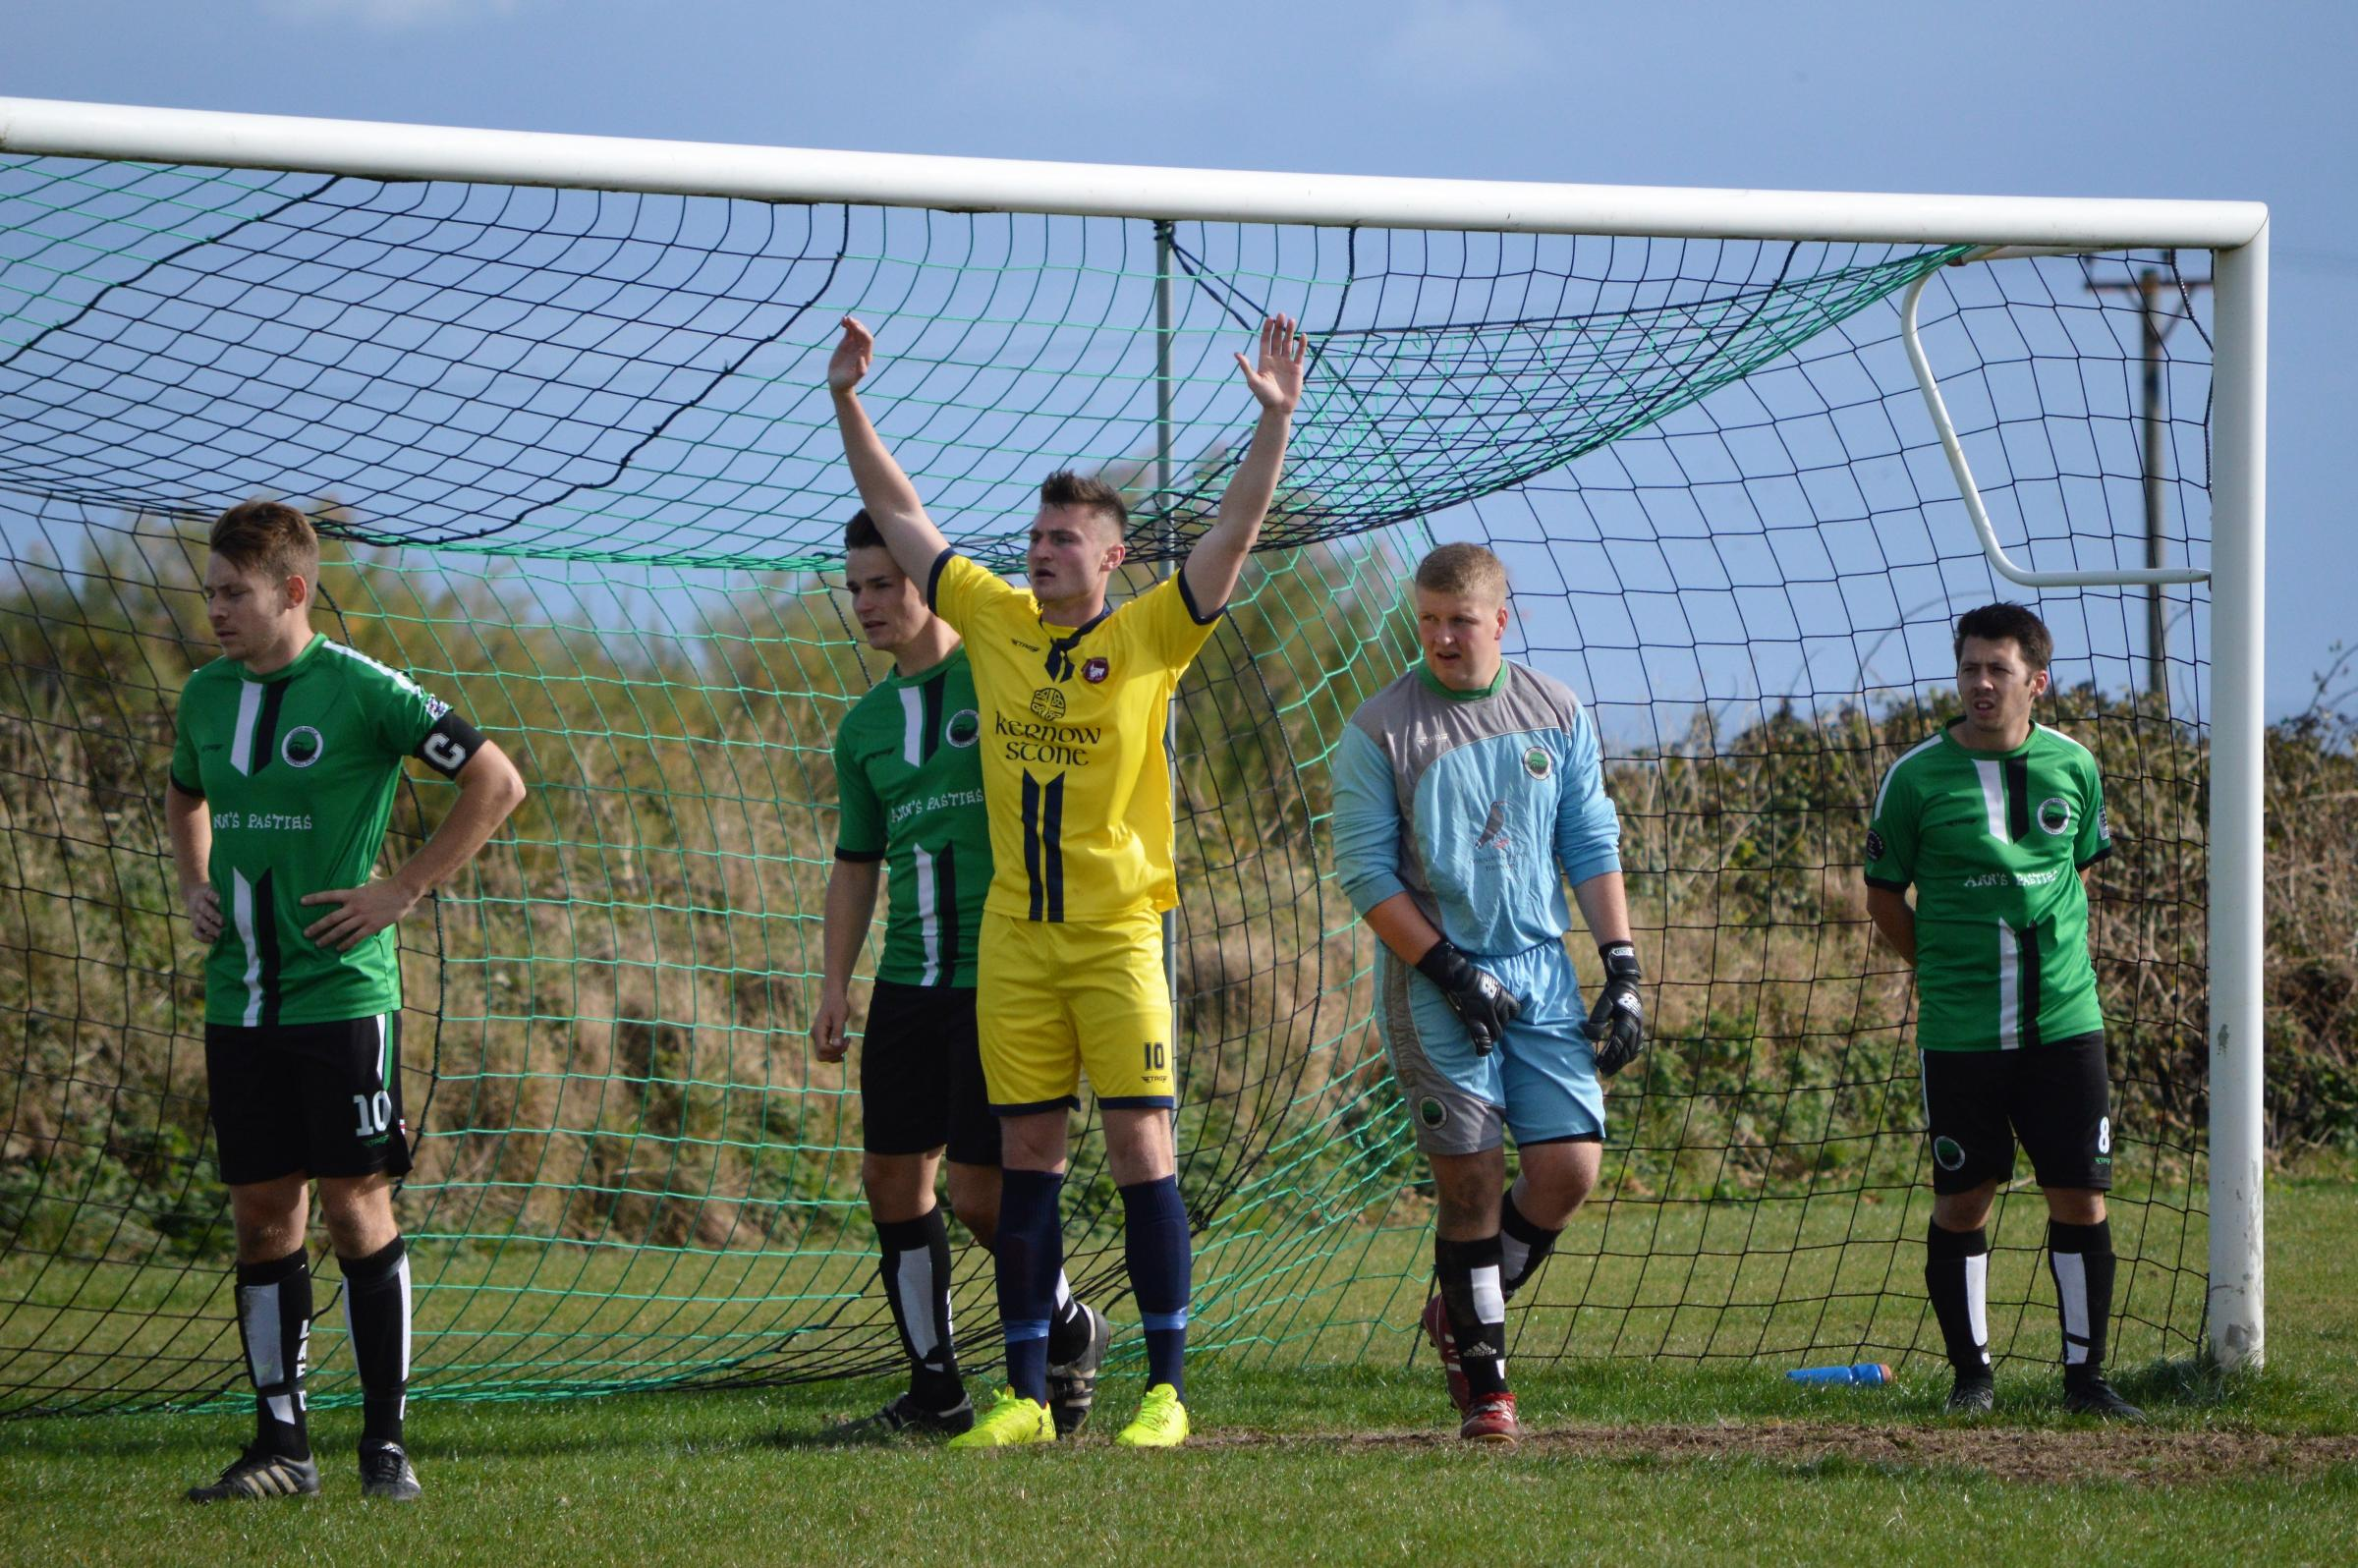 Wendron United striker Rory Jarvis (centre) scored his side's second goal in their 3-0 win at home to Plymouth Marjon in the SWPL Division 1 West on Saturday